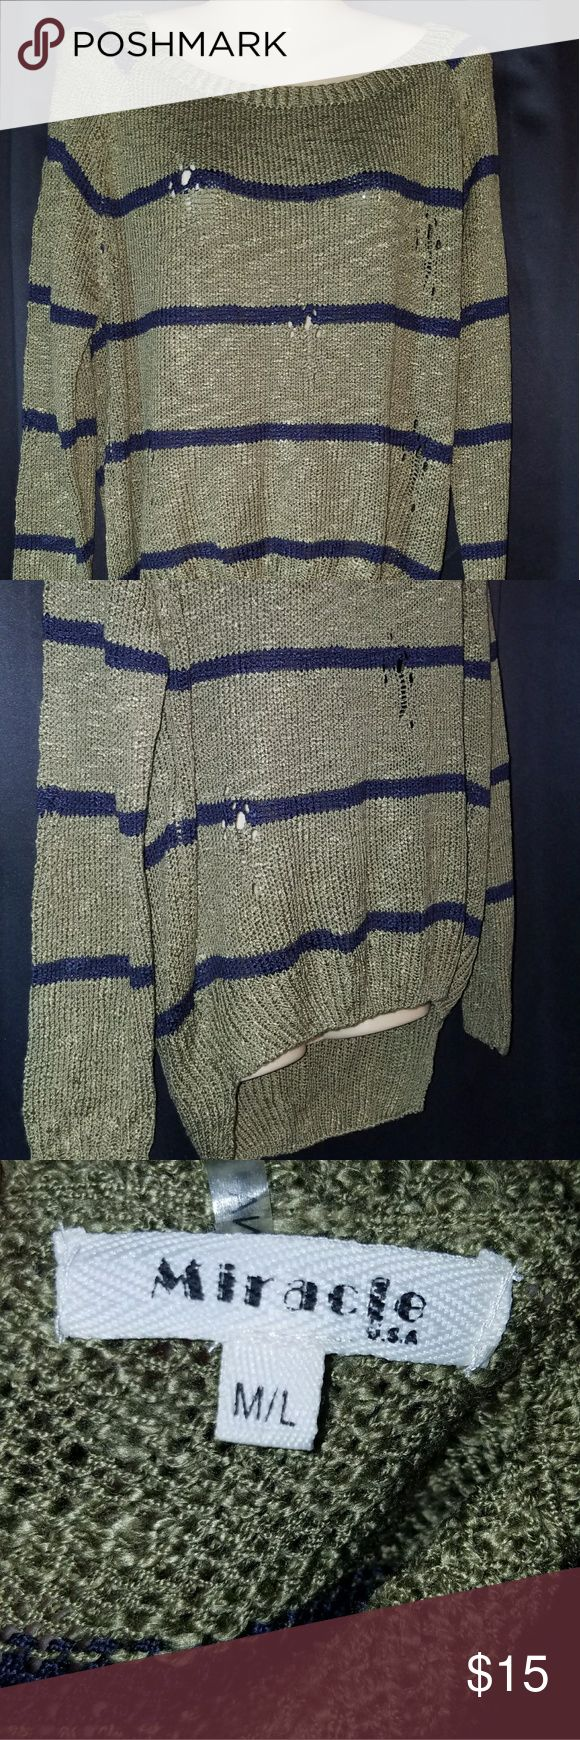 Destroyed Stripped Sweater. Never worn, from Apricot Lane.  Hi-Low size M/L Apricot Lane Sweaters Crew & Scoop Necks